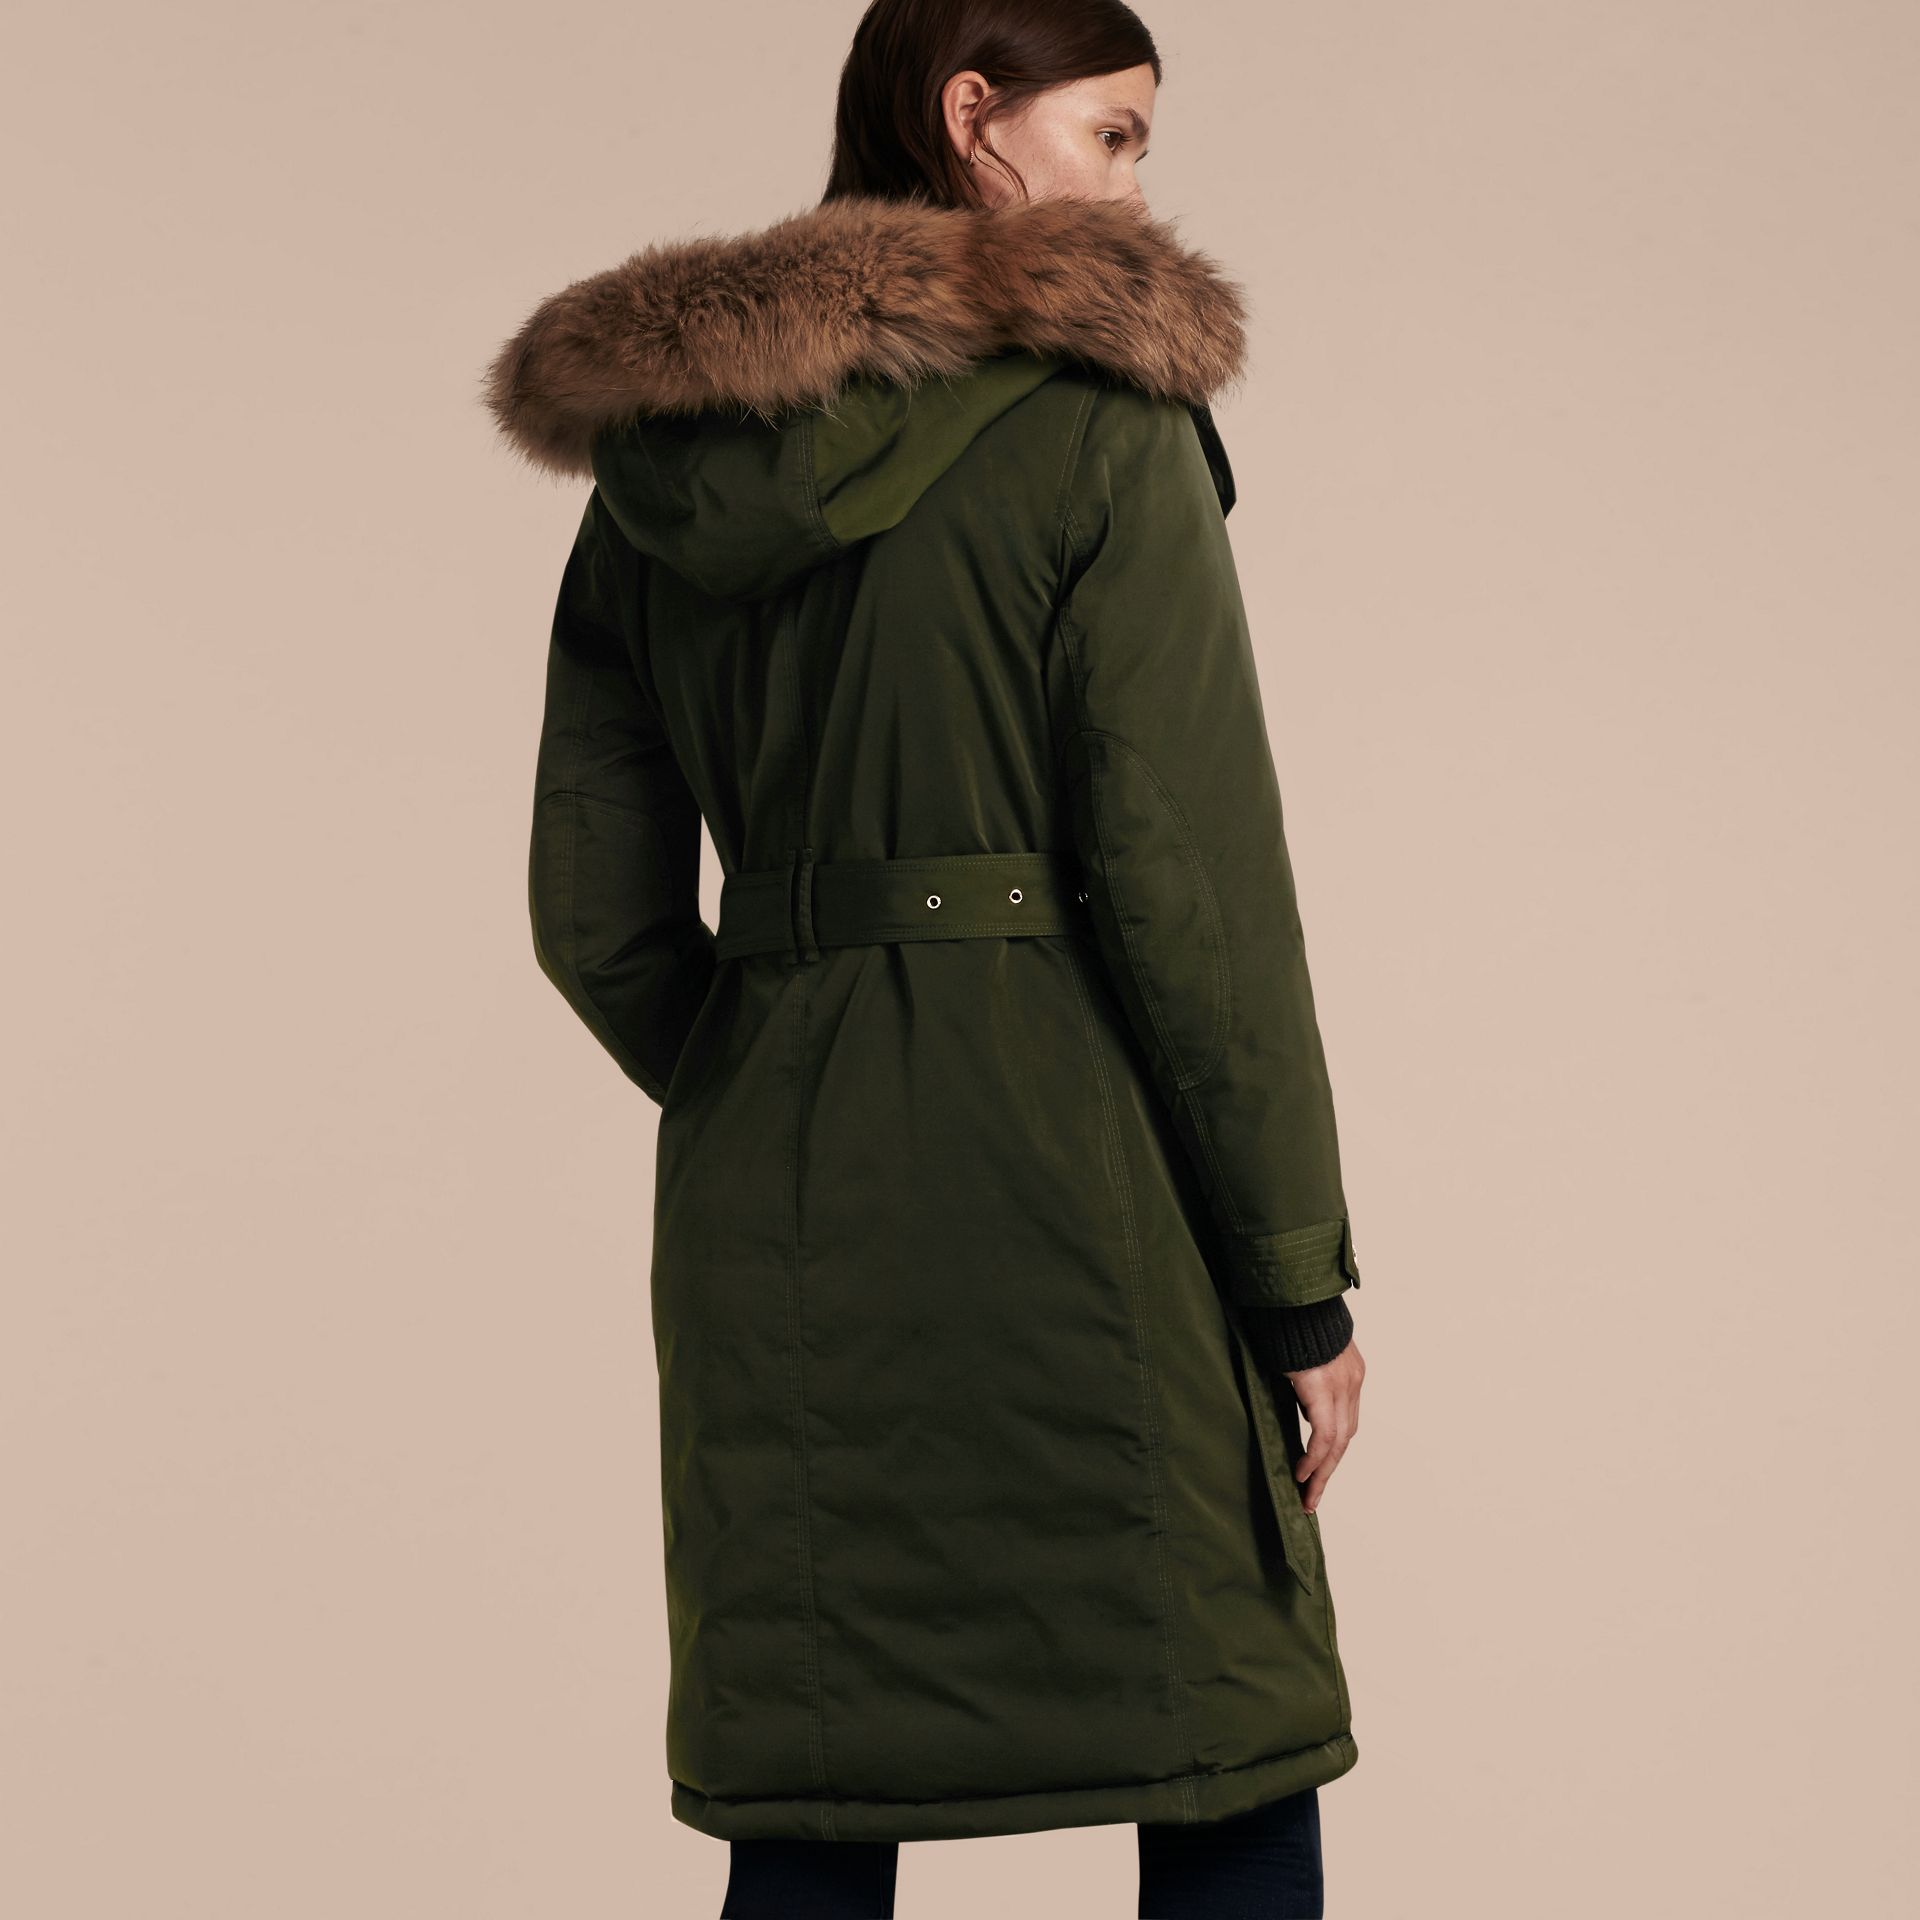 Dark cedar green Down-filled Parka Coat with Detachable Fur Trim Dark Cedar Green - gallery image 3